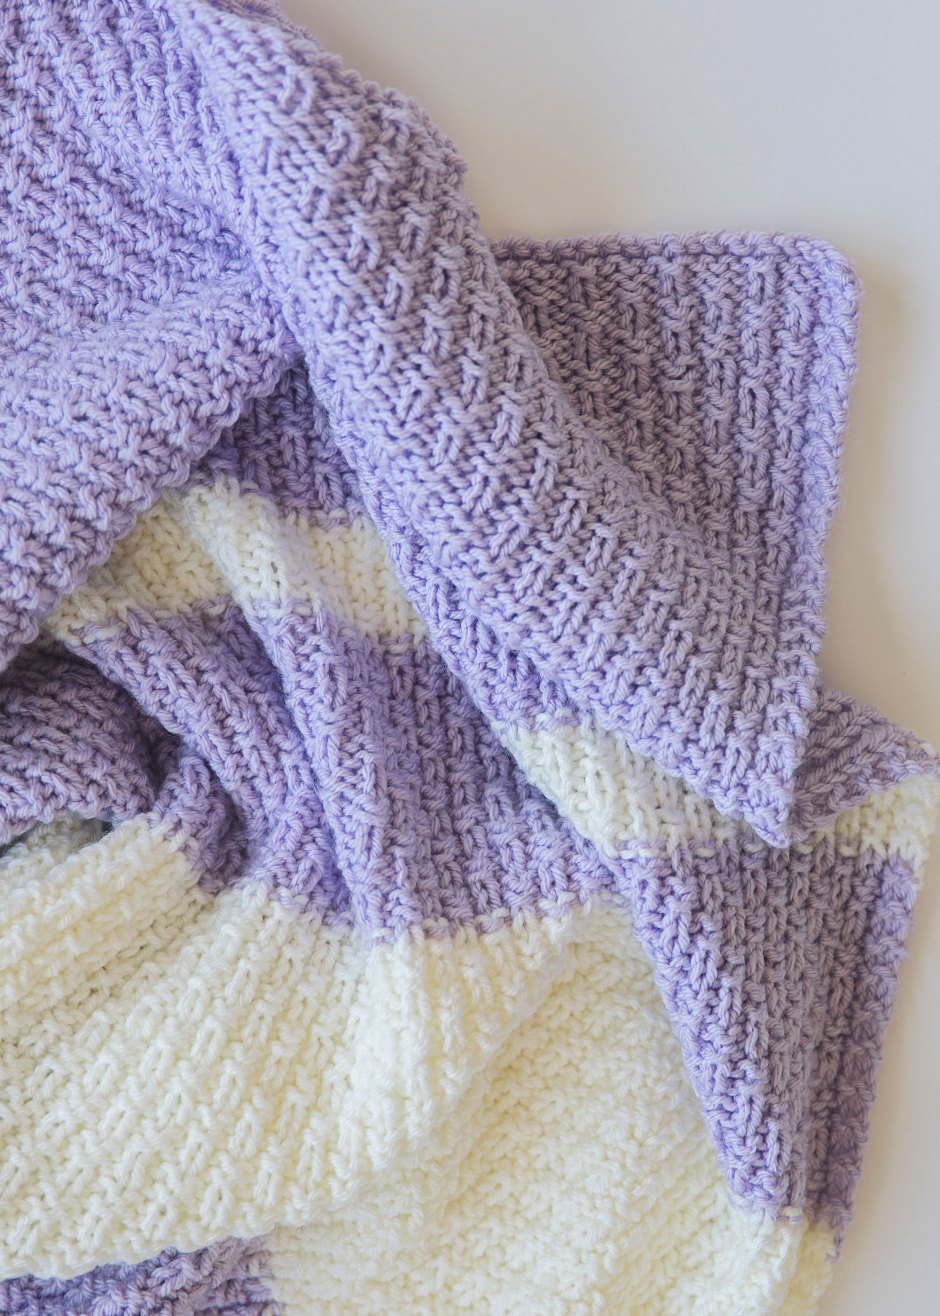 Baby Blanket Knitting Pattern Easy : Easy Knit Baby Blanket Pattern - Leelee KnitsLeelee Knits